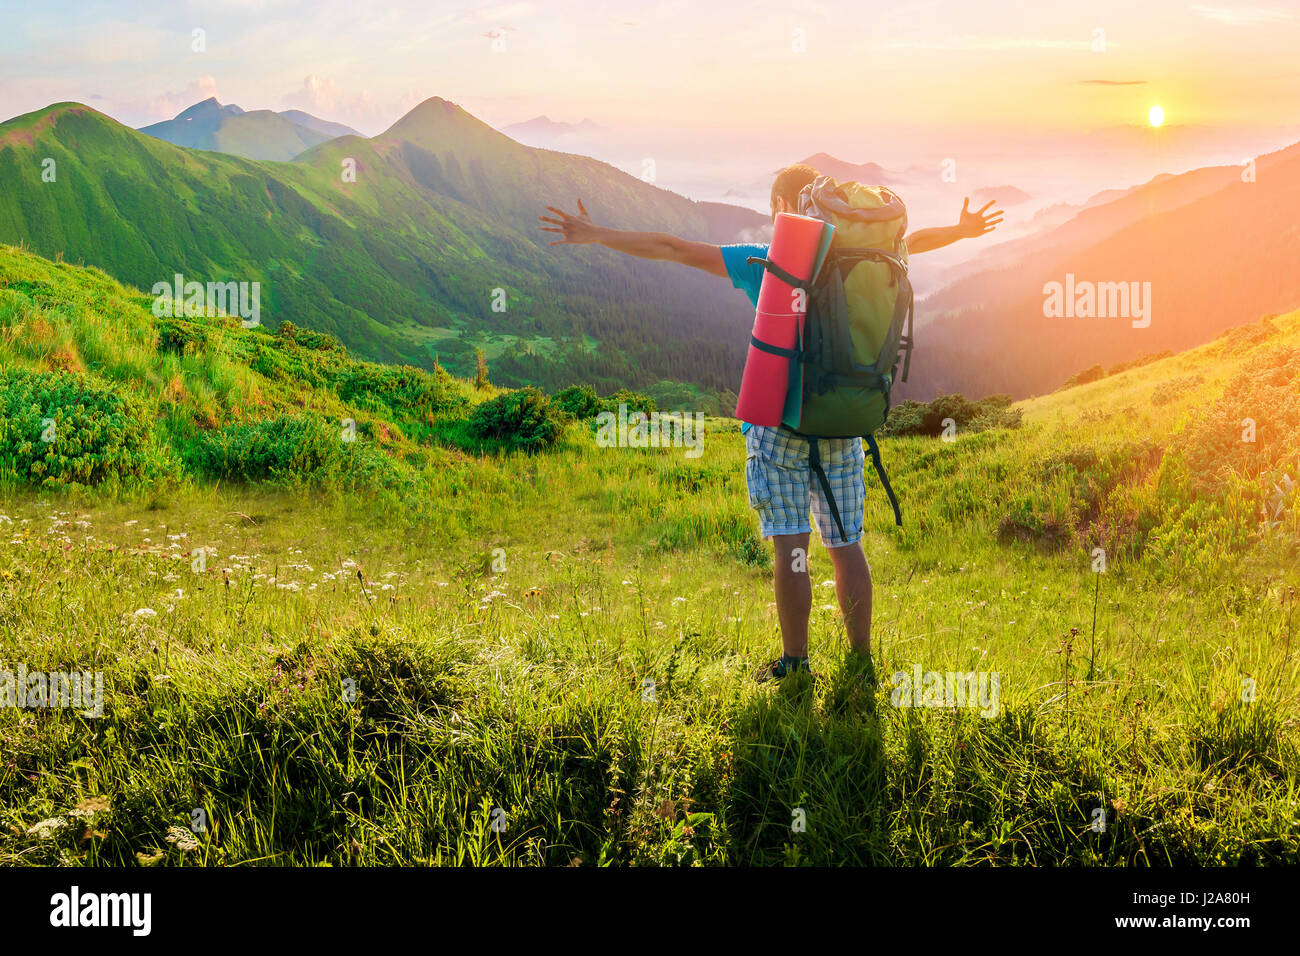 Hiker with a backpack standing in mountains. Amazing nature landscape. Soft light effect - Stock-Bilder